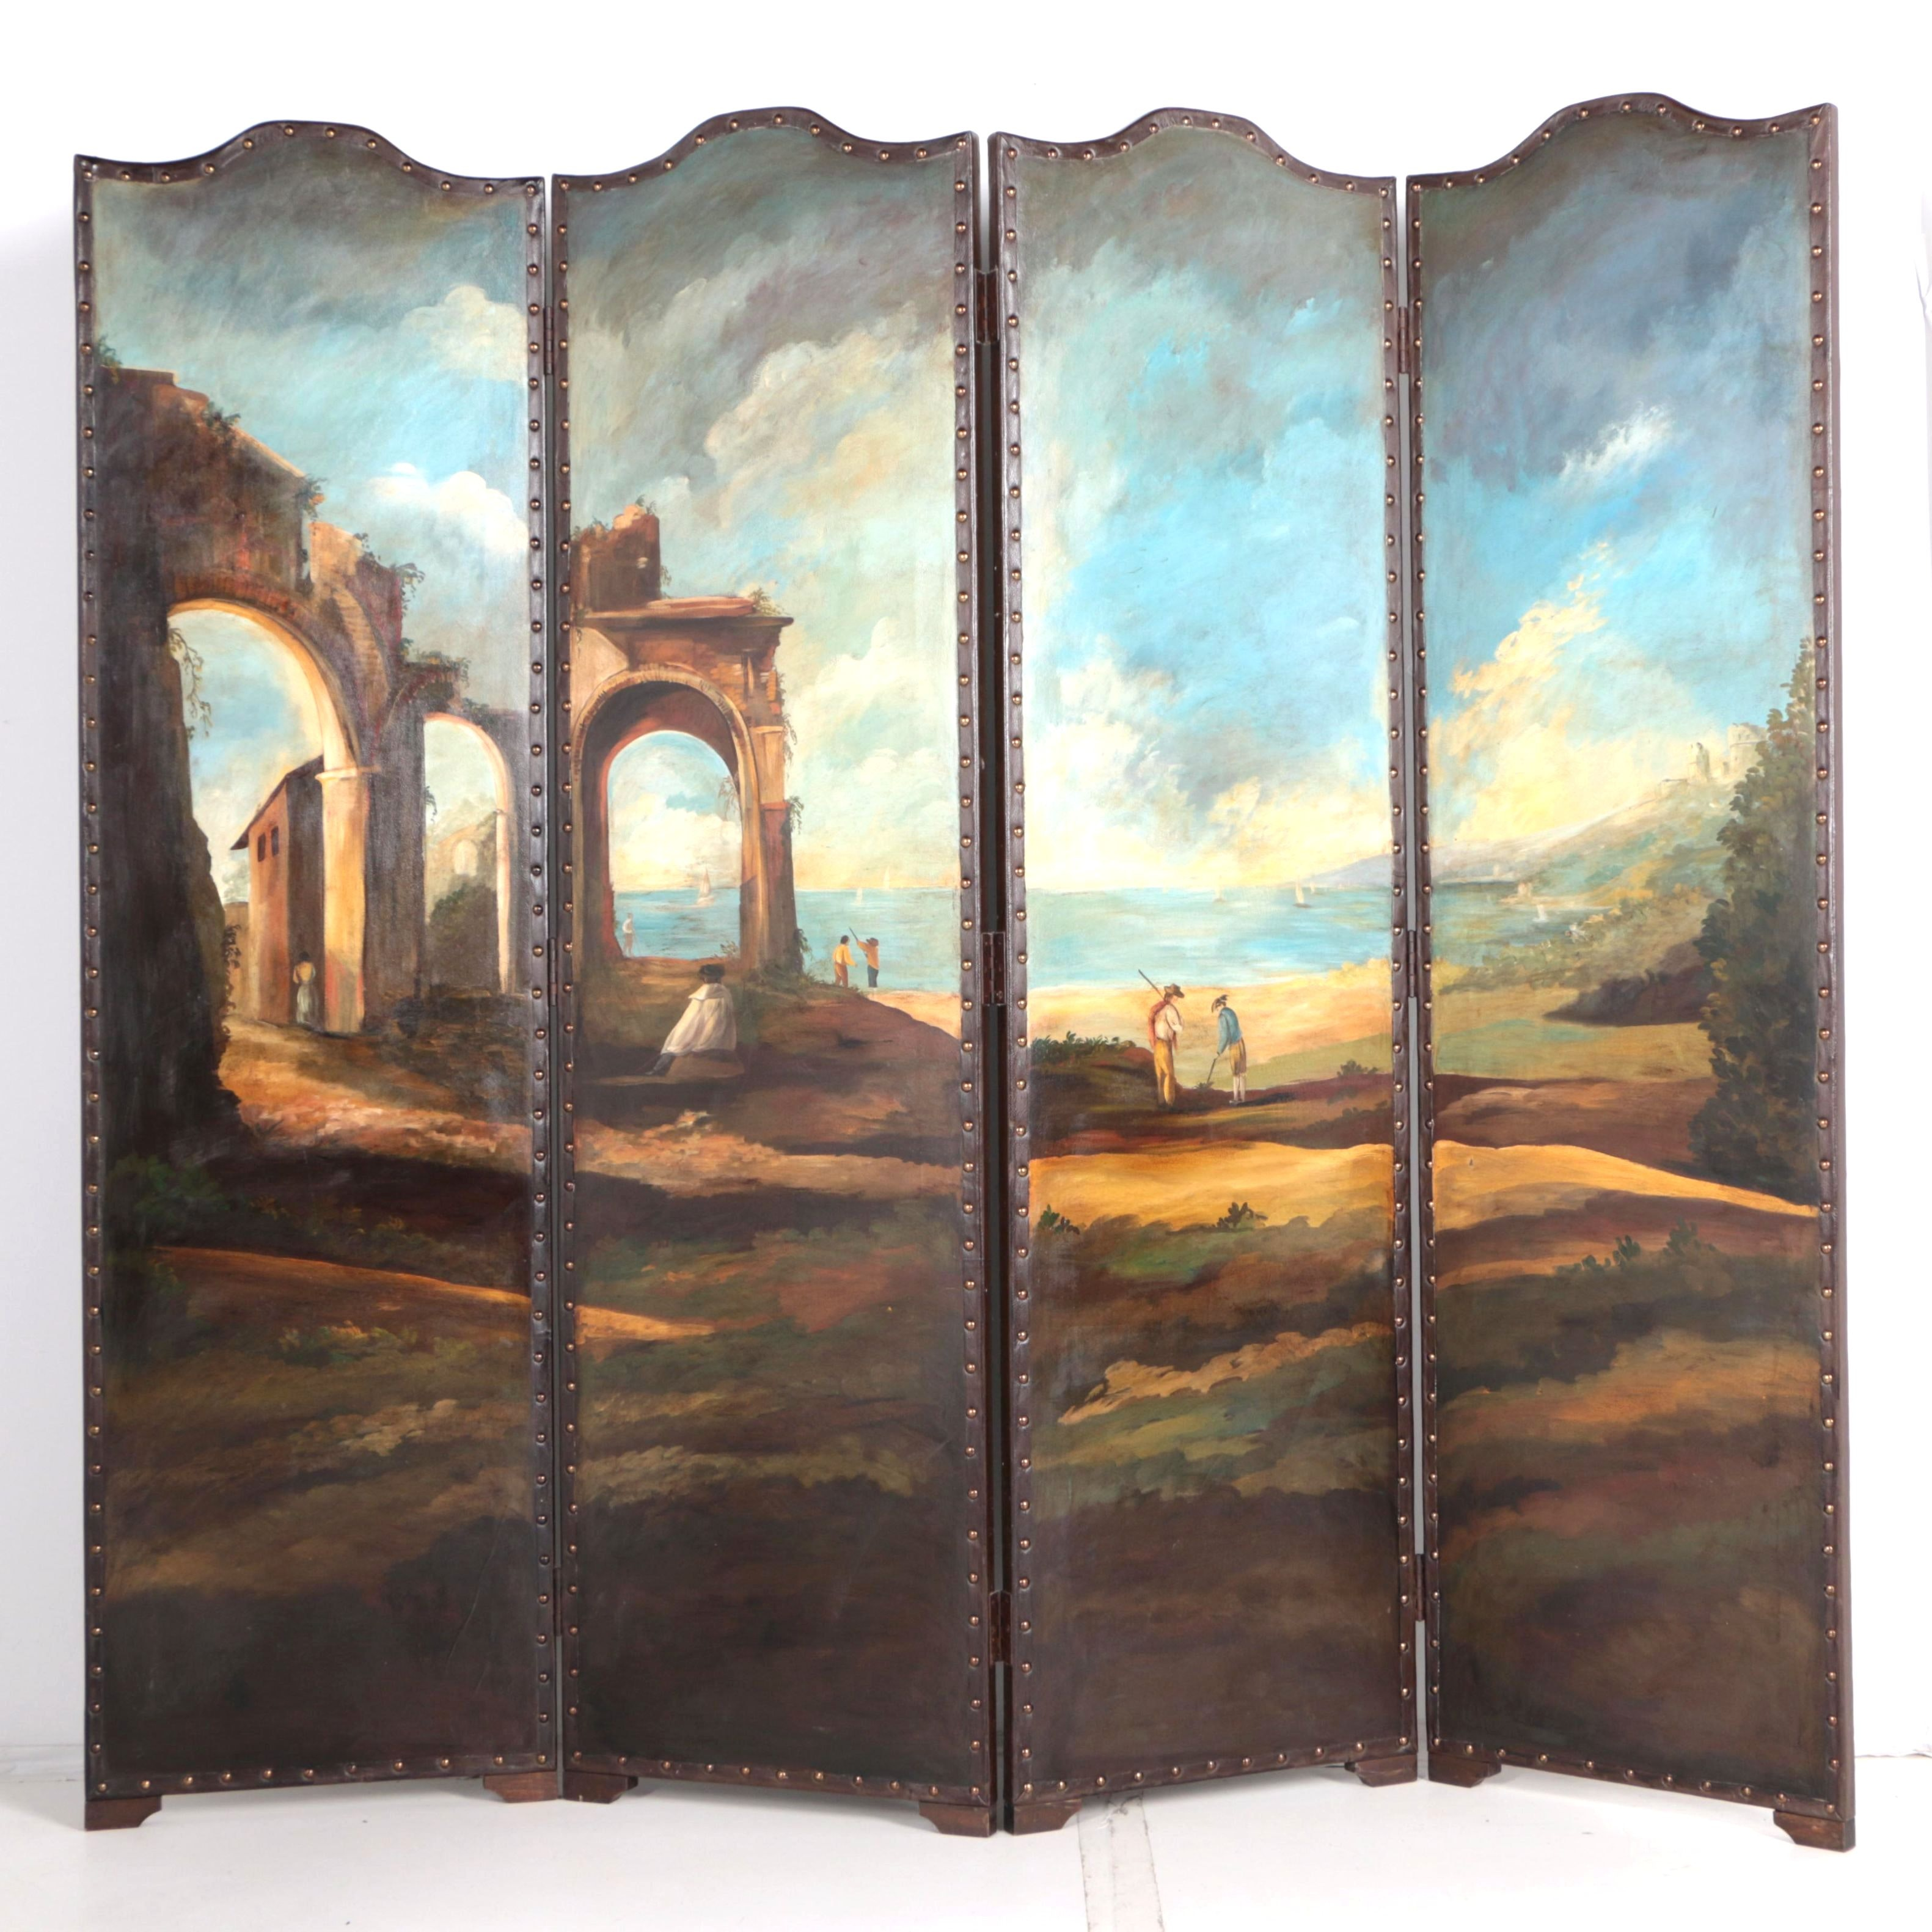 Oil Painting of an Iddylic Landscape on a Leather Upholstered Screen